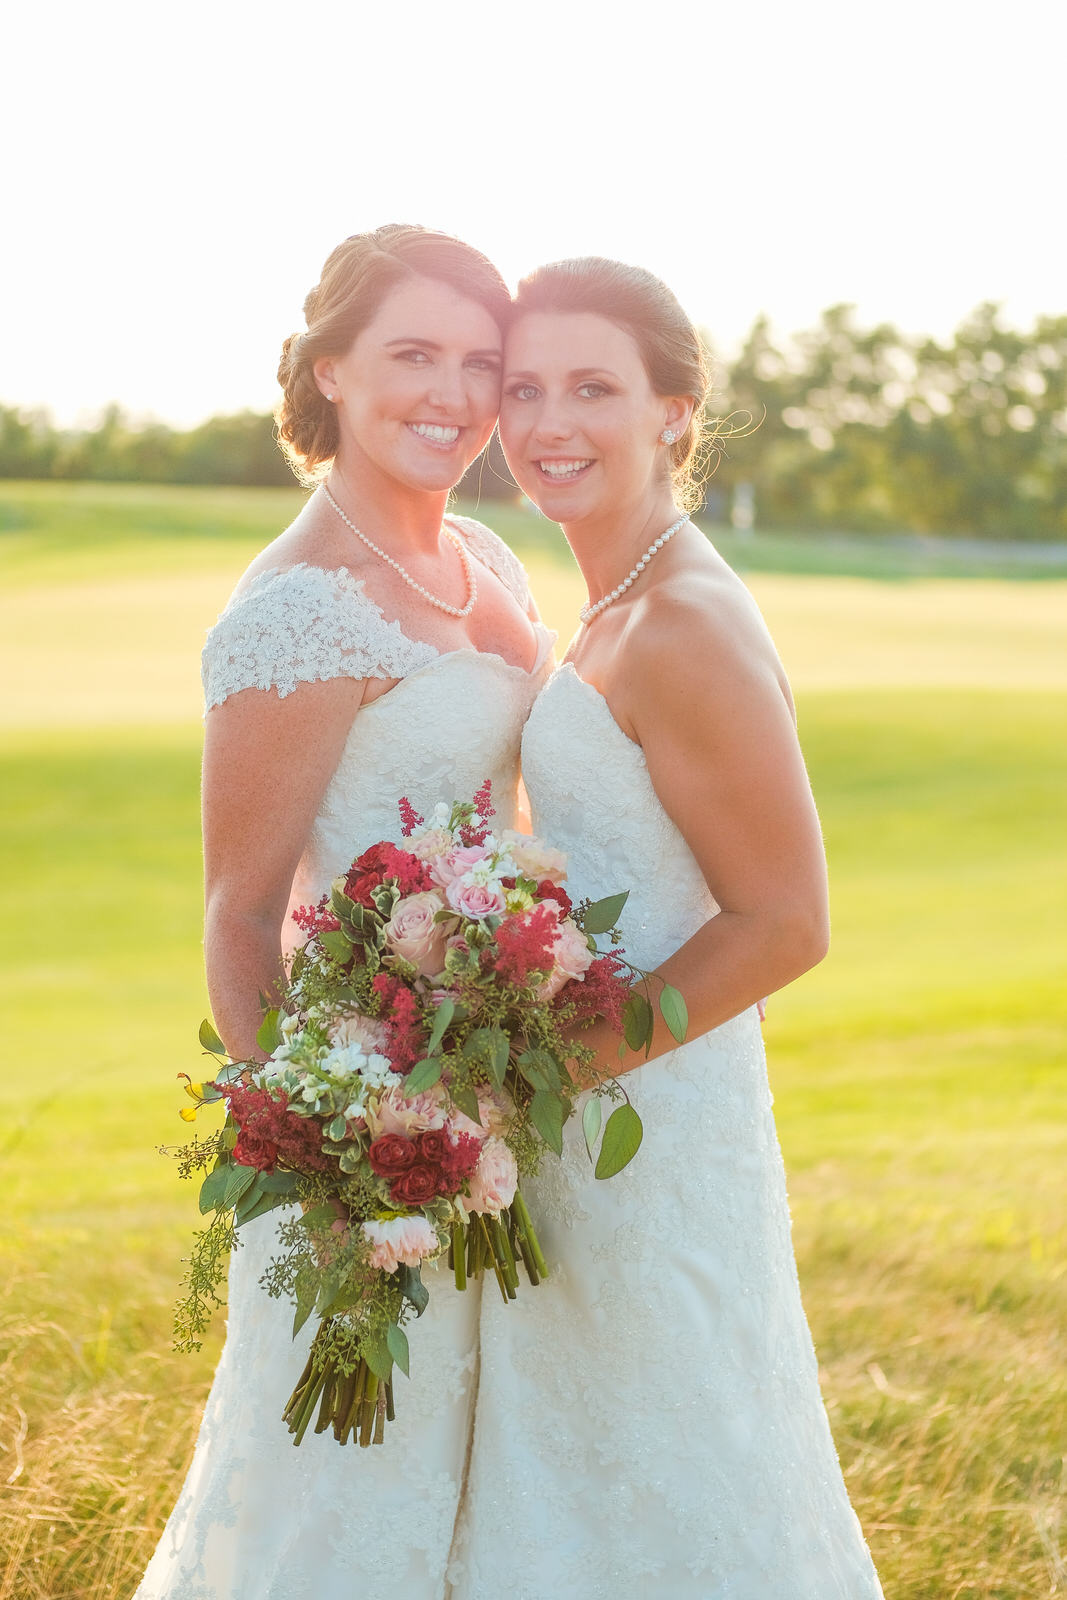 waverly-oaks-golf-club-wedding-photography-62.jpg